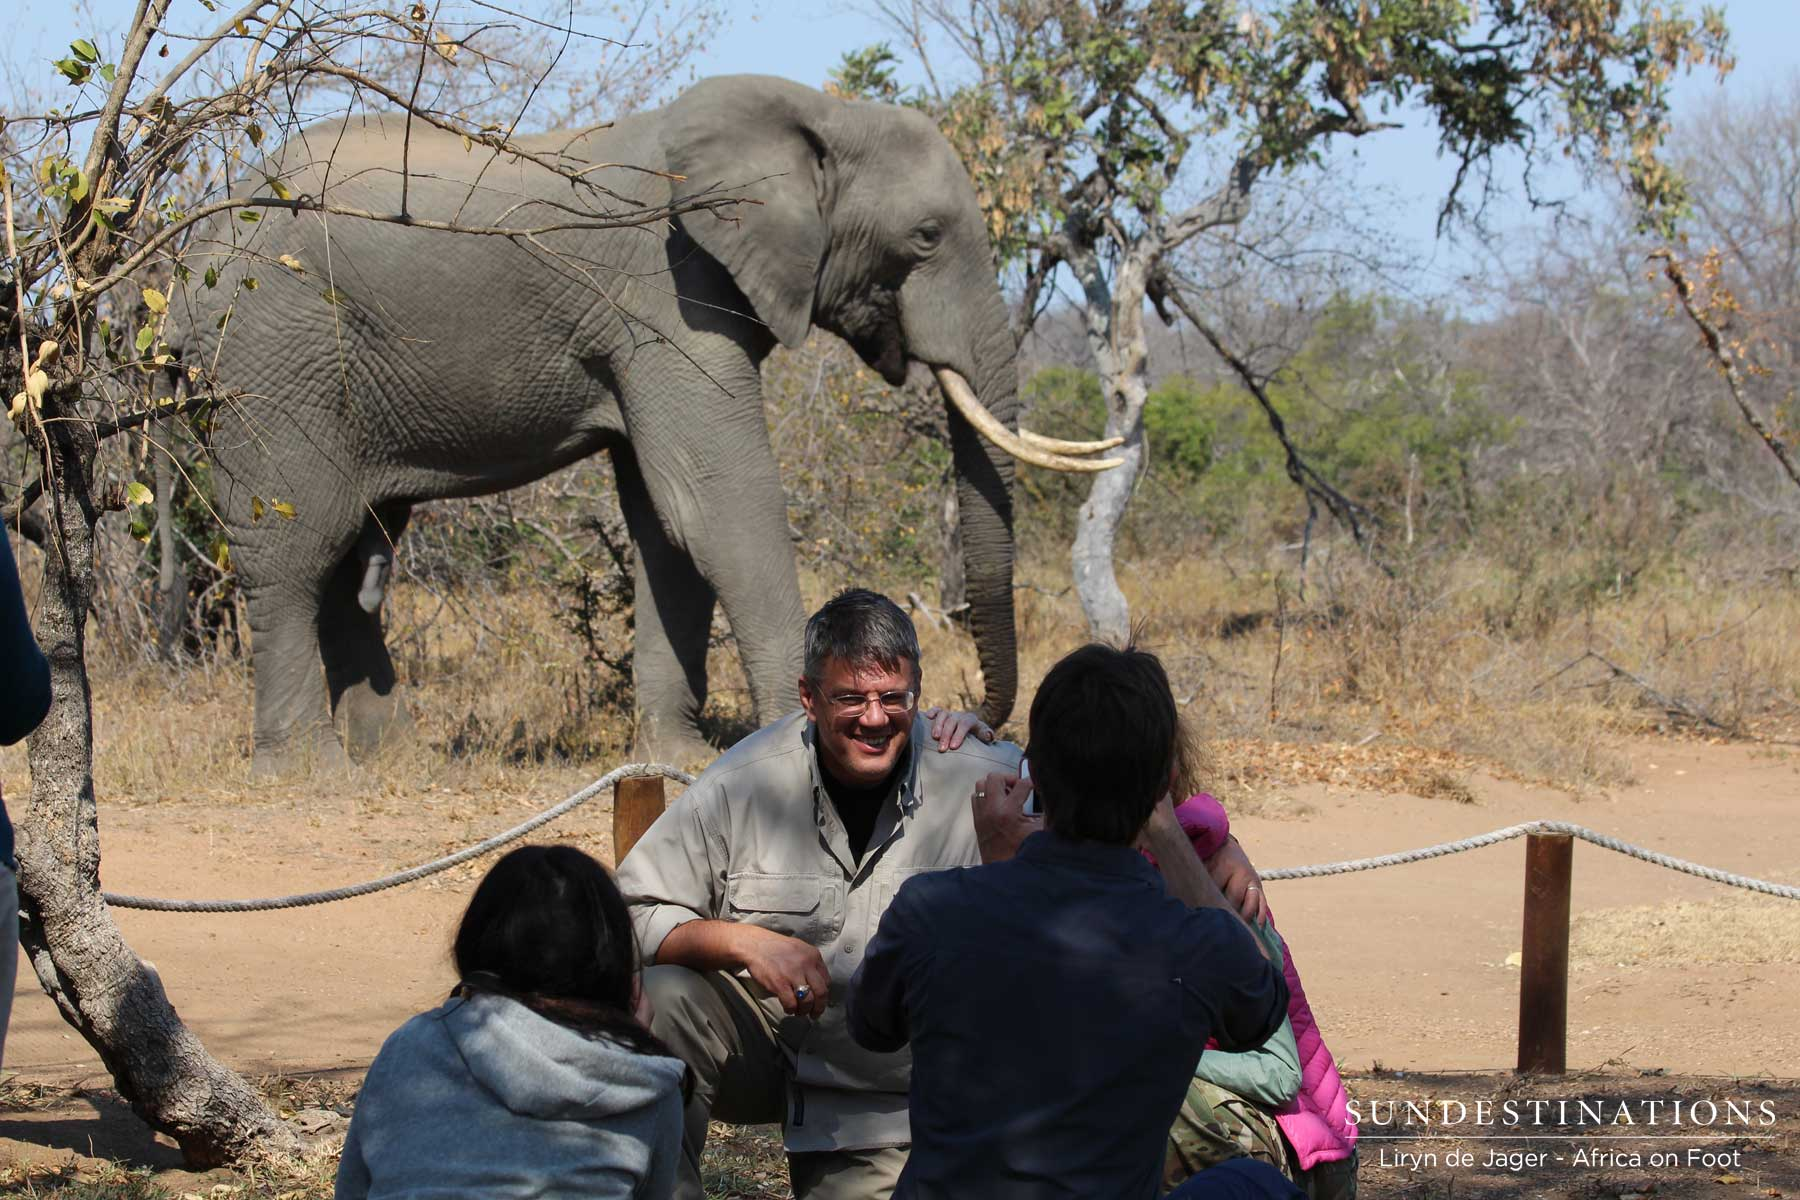 Relief Camp Manager Photographs Elephant at Pool in Camp